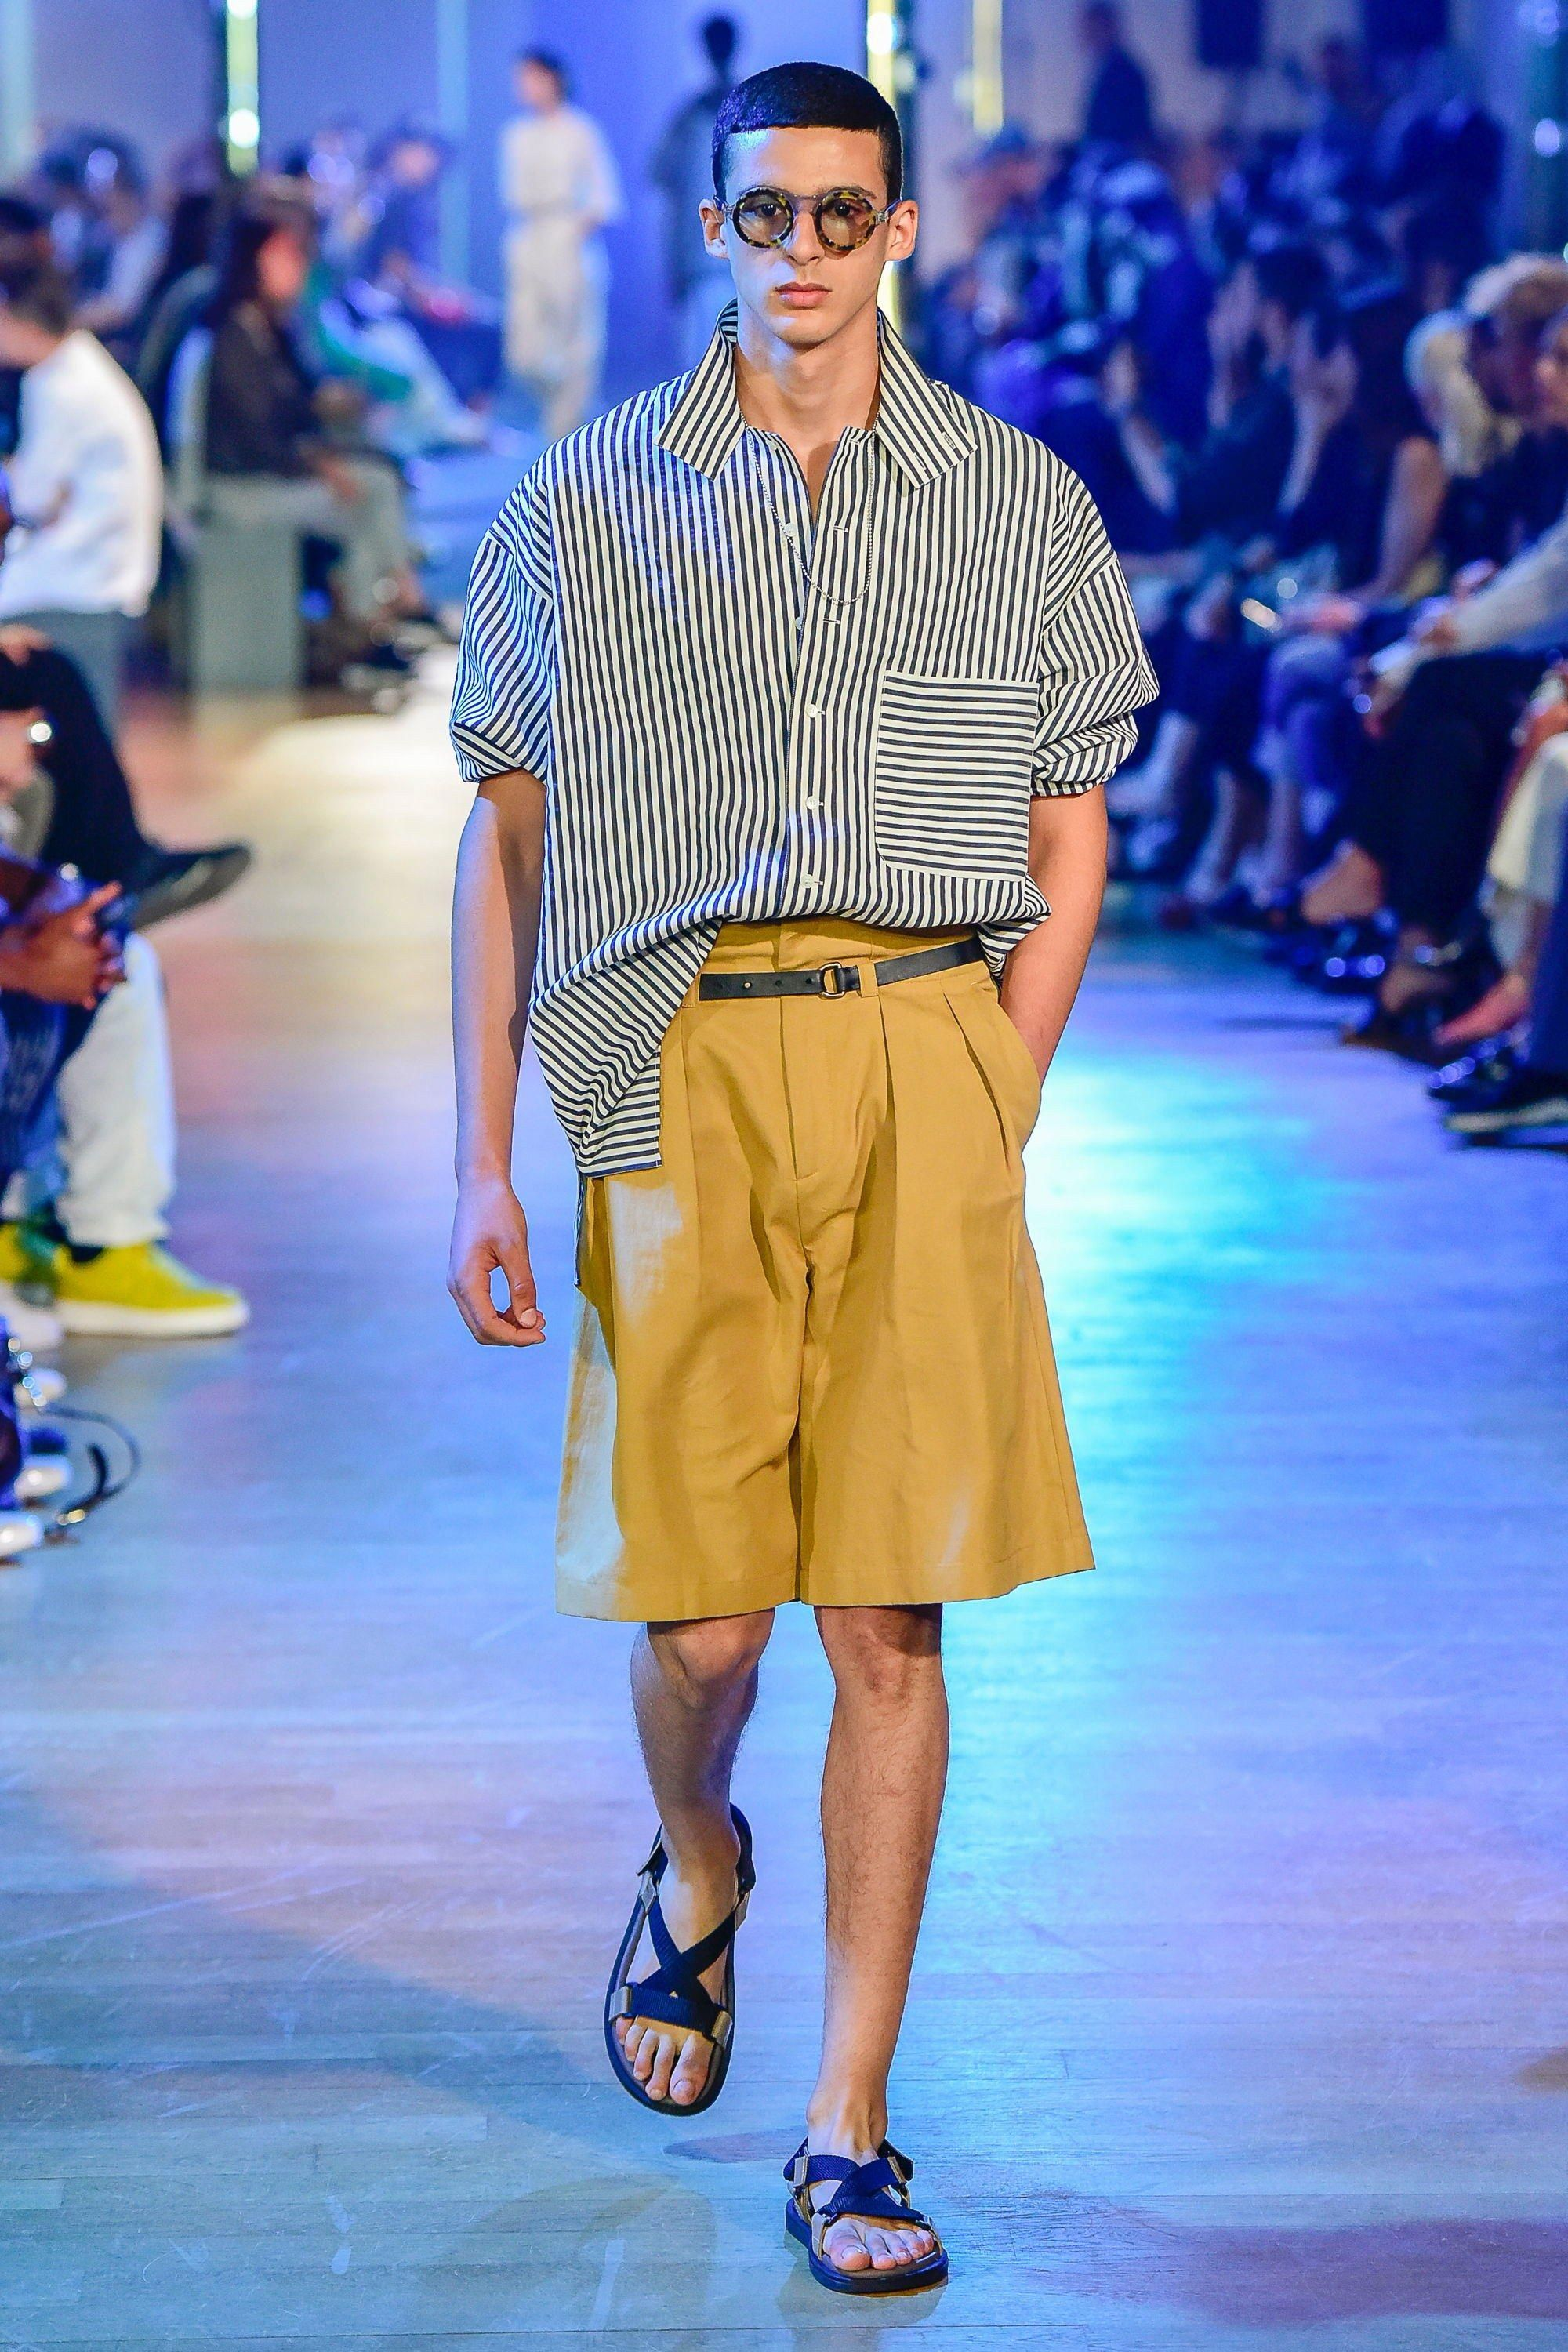 3737de4da549 Cerruti 1881 Spring 2019 Menswear Paris Collection  mensfashionoutfits